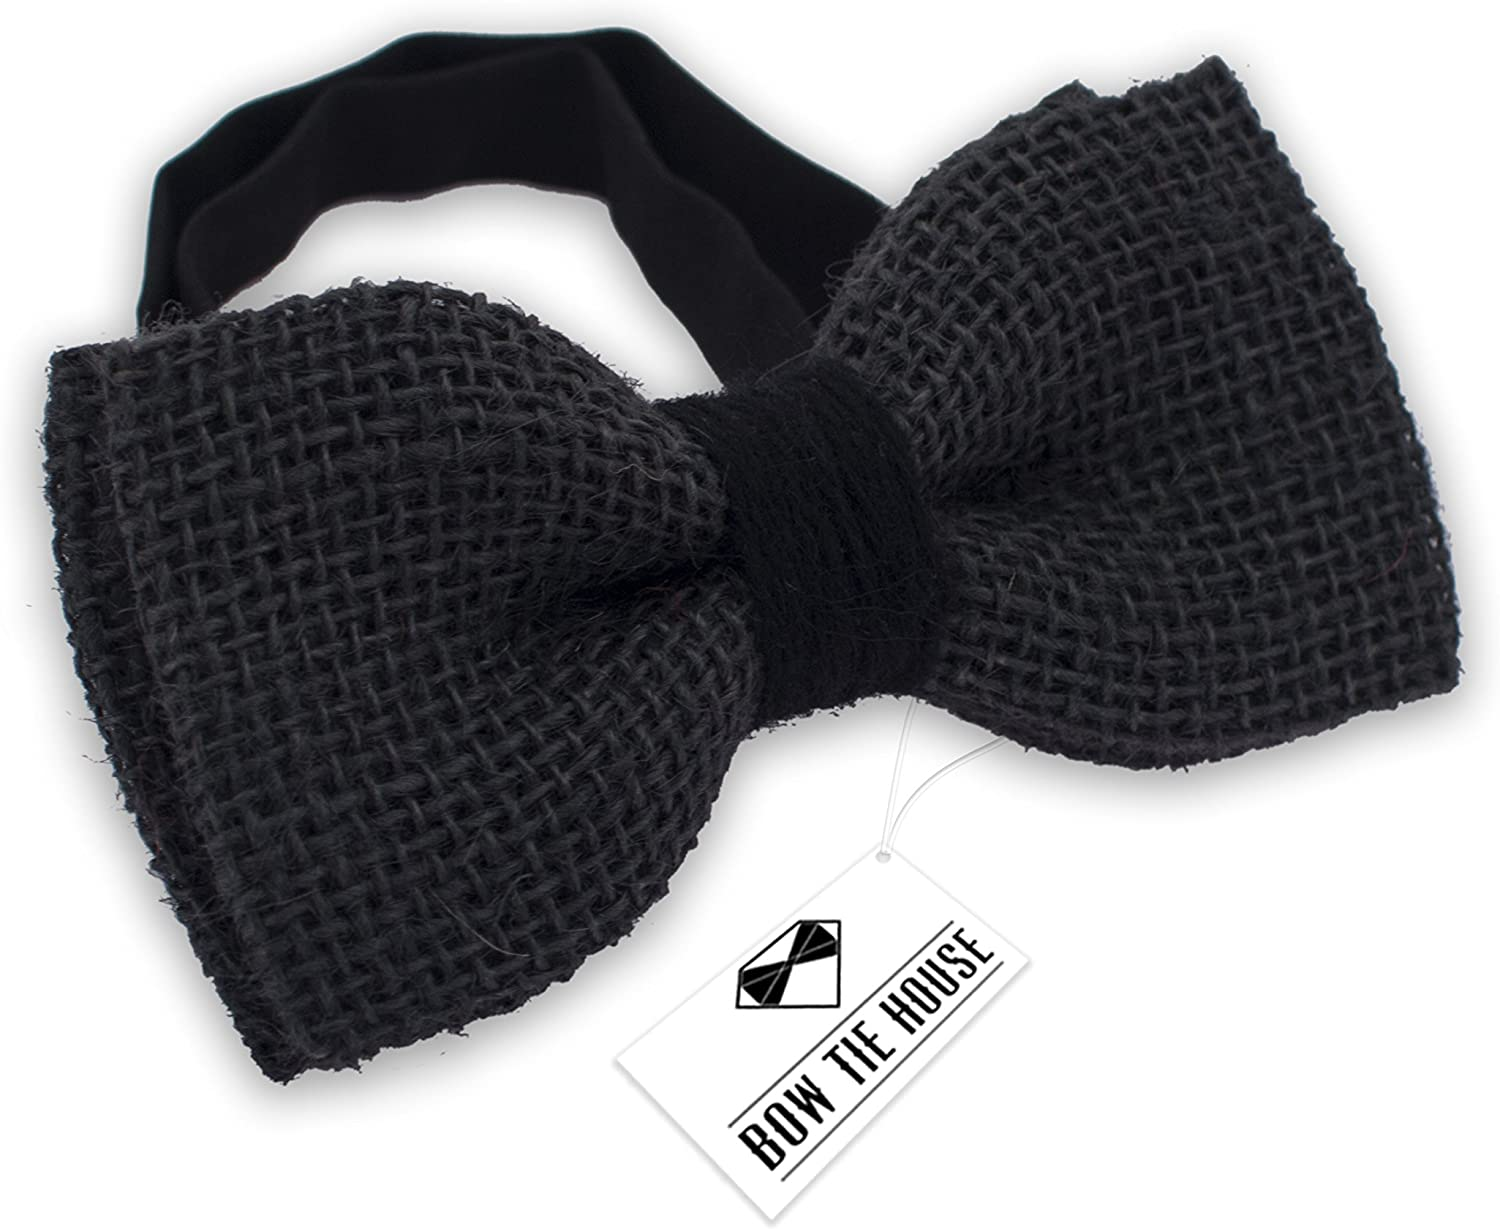 Bow Tie House Rustic Pre-Tied Bow Tie in 100/% Burlap Hessian Large, Brown